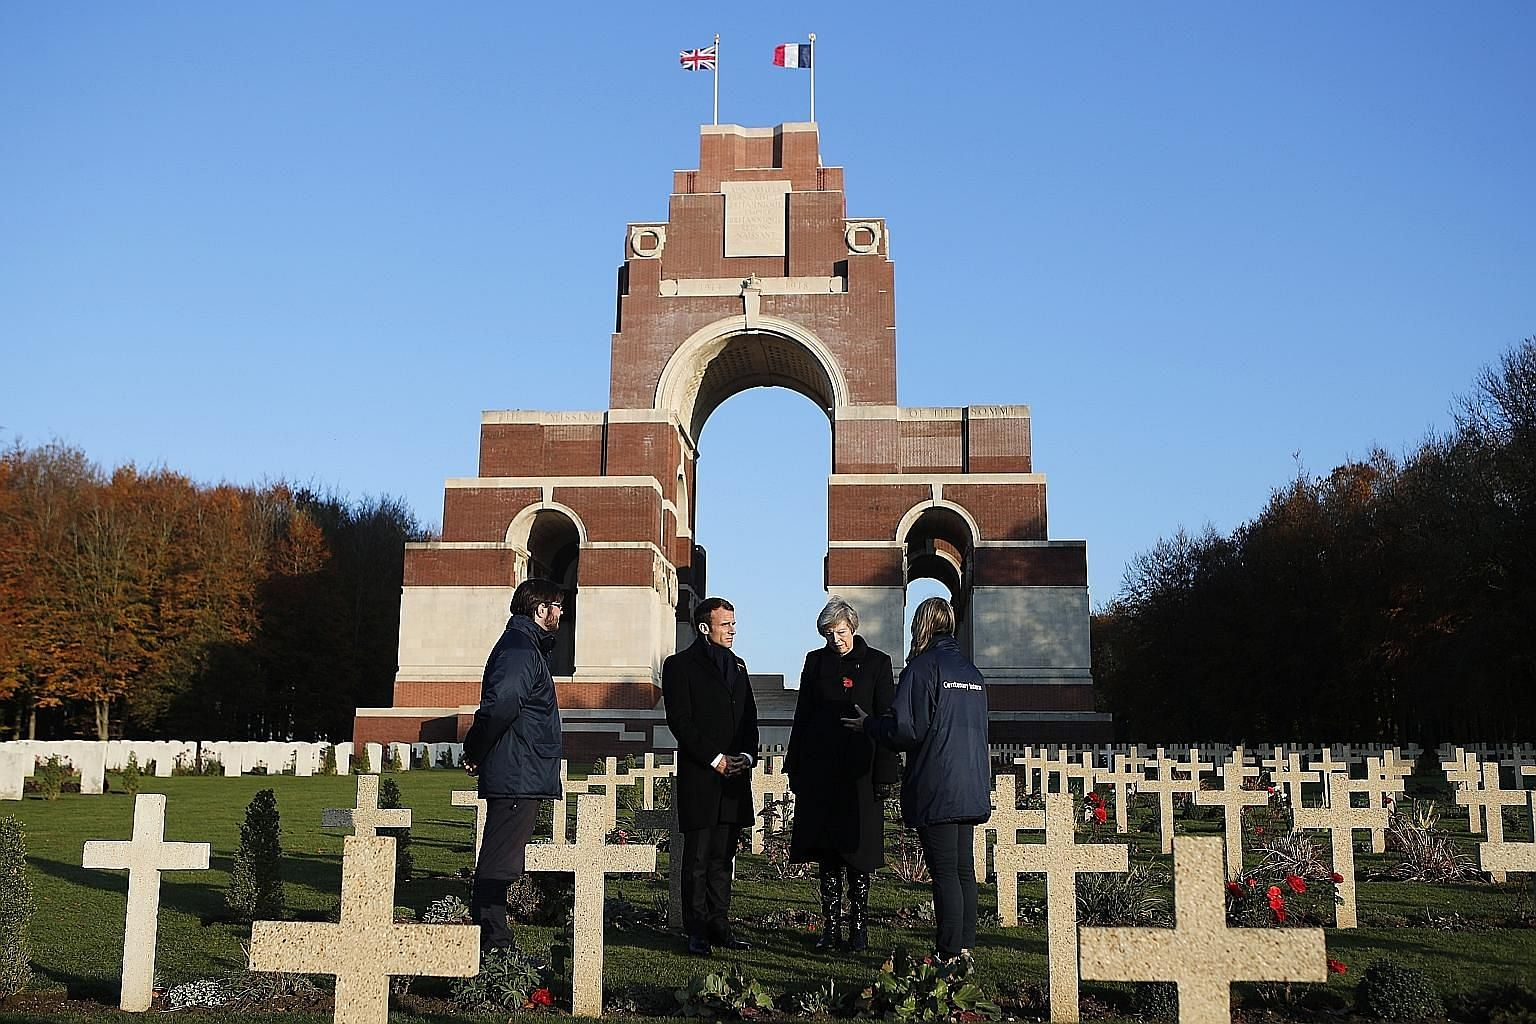 British Prime Minister Theresa May and French President Emmanuel Macron visiting the Thiepval Memorial in northern France last Friday as part of events commemorating the 100th anniversary of the World War I Armistice today.